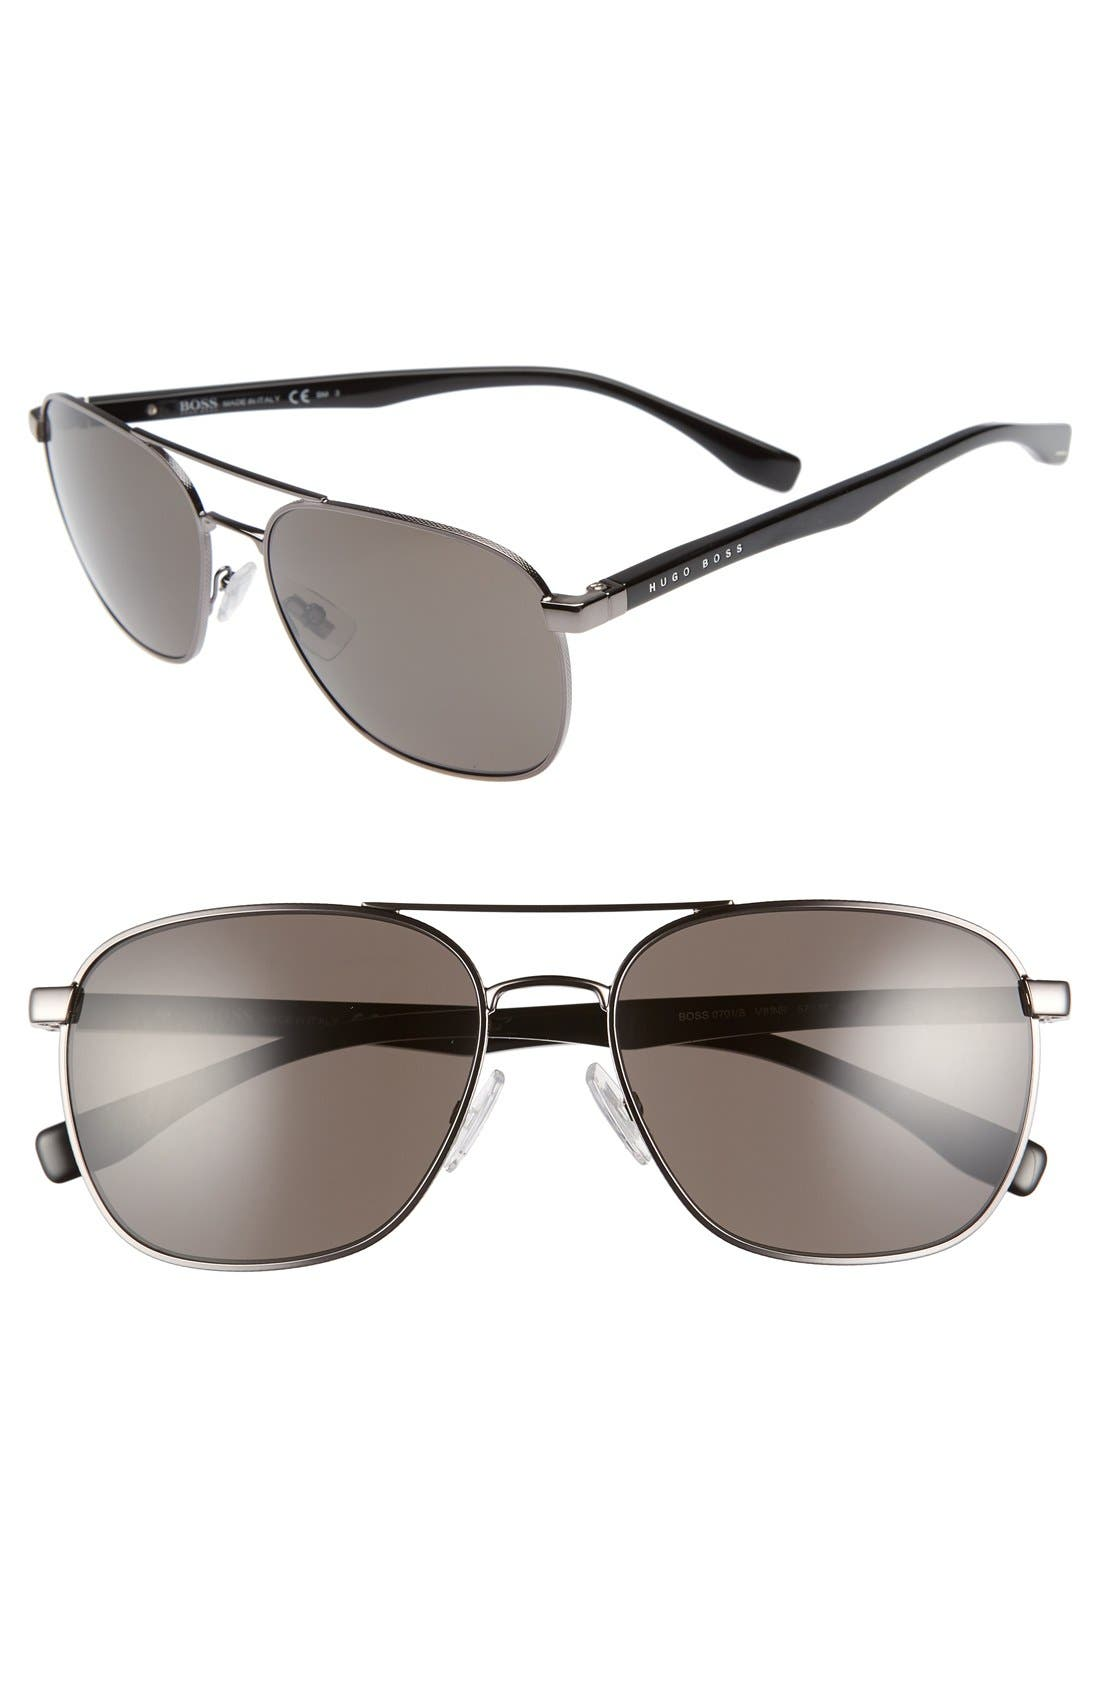 BOSS '0701/S' 57mm Aviator Sunglasses